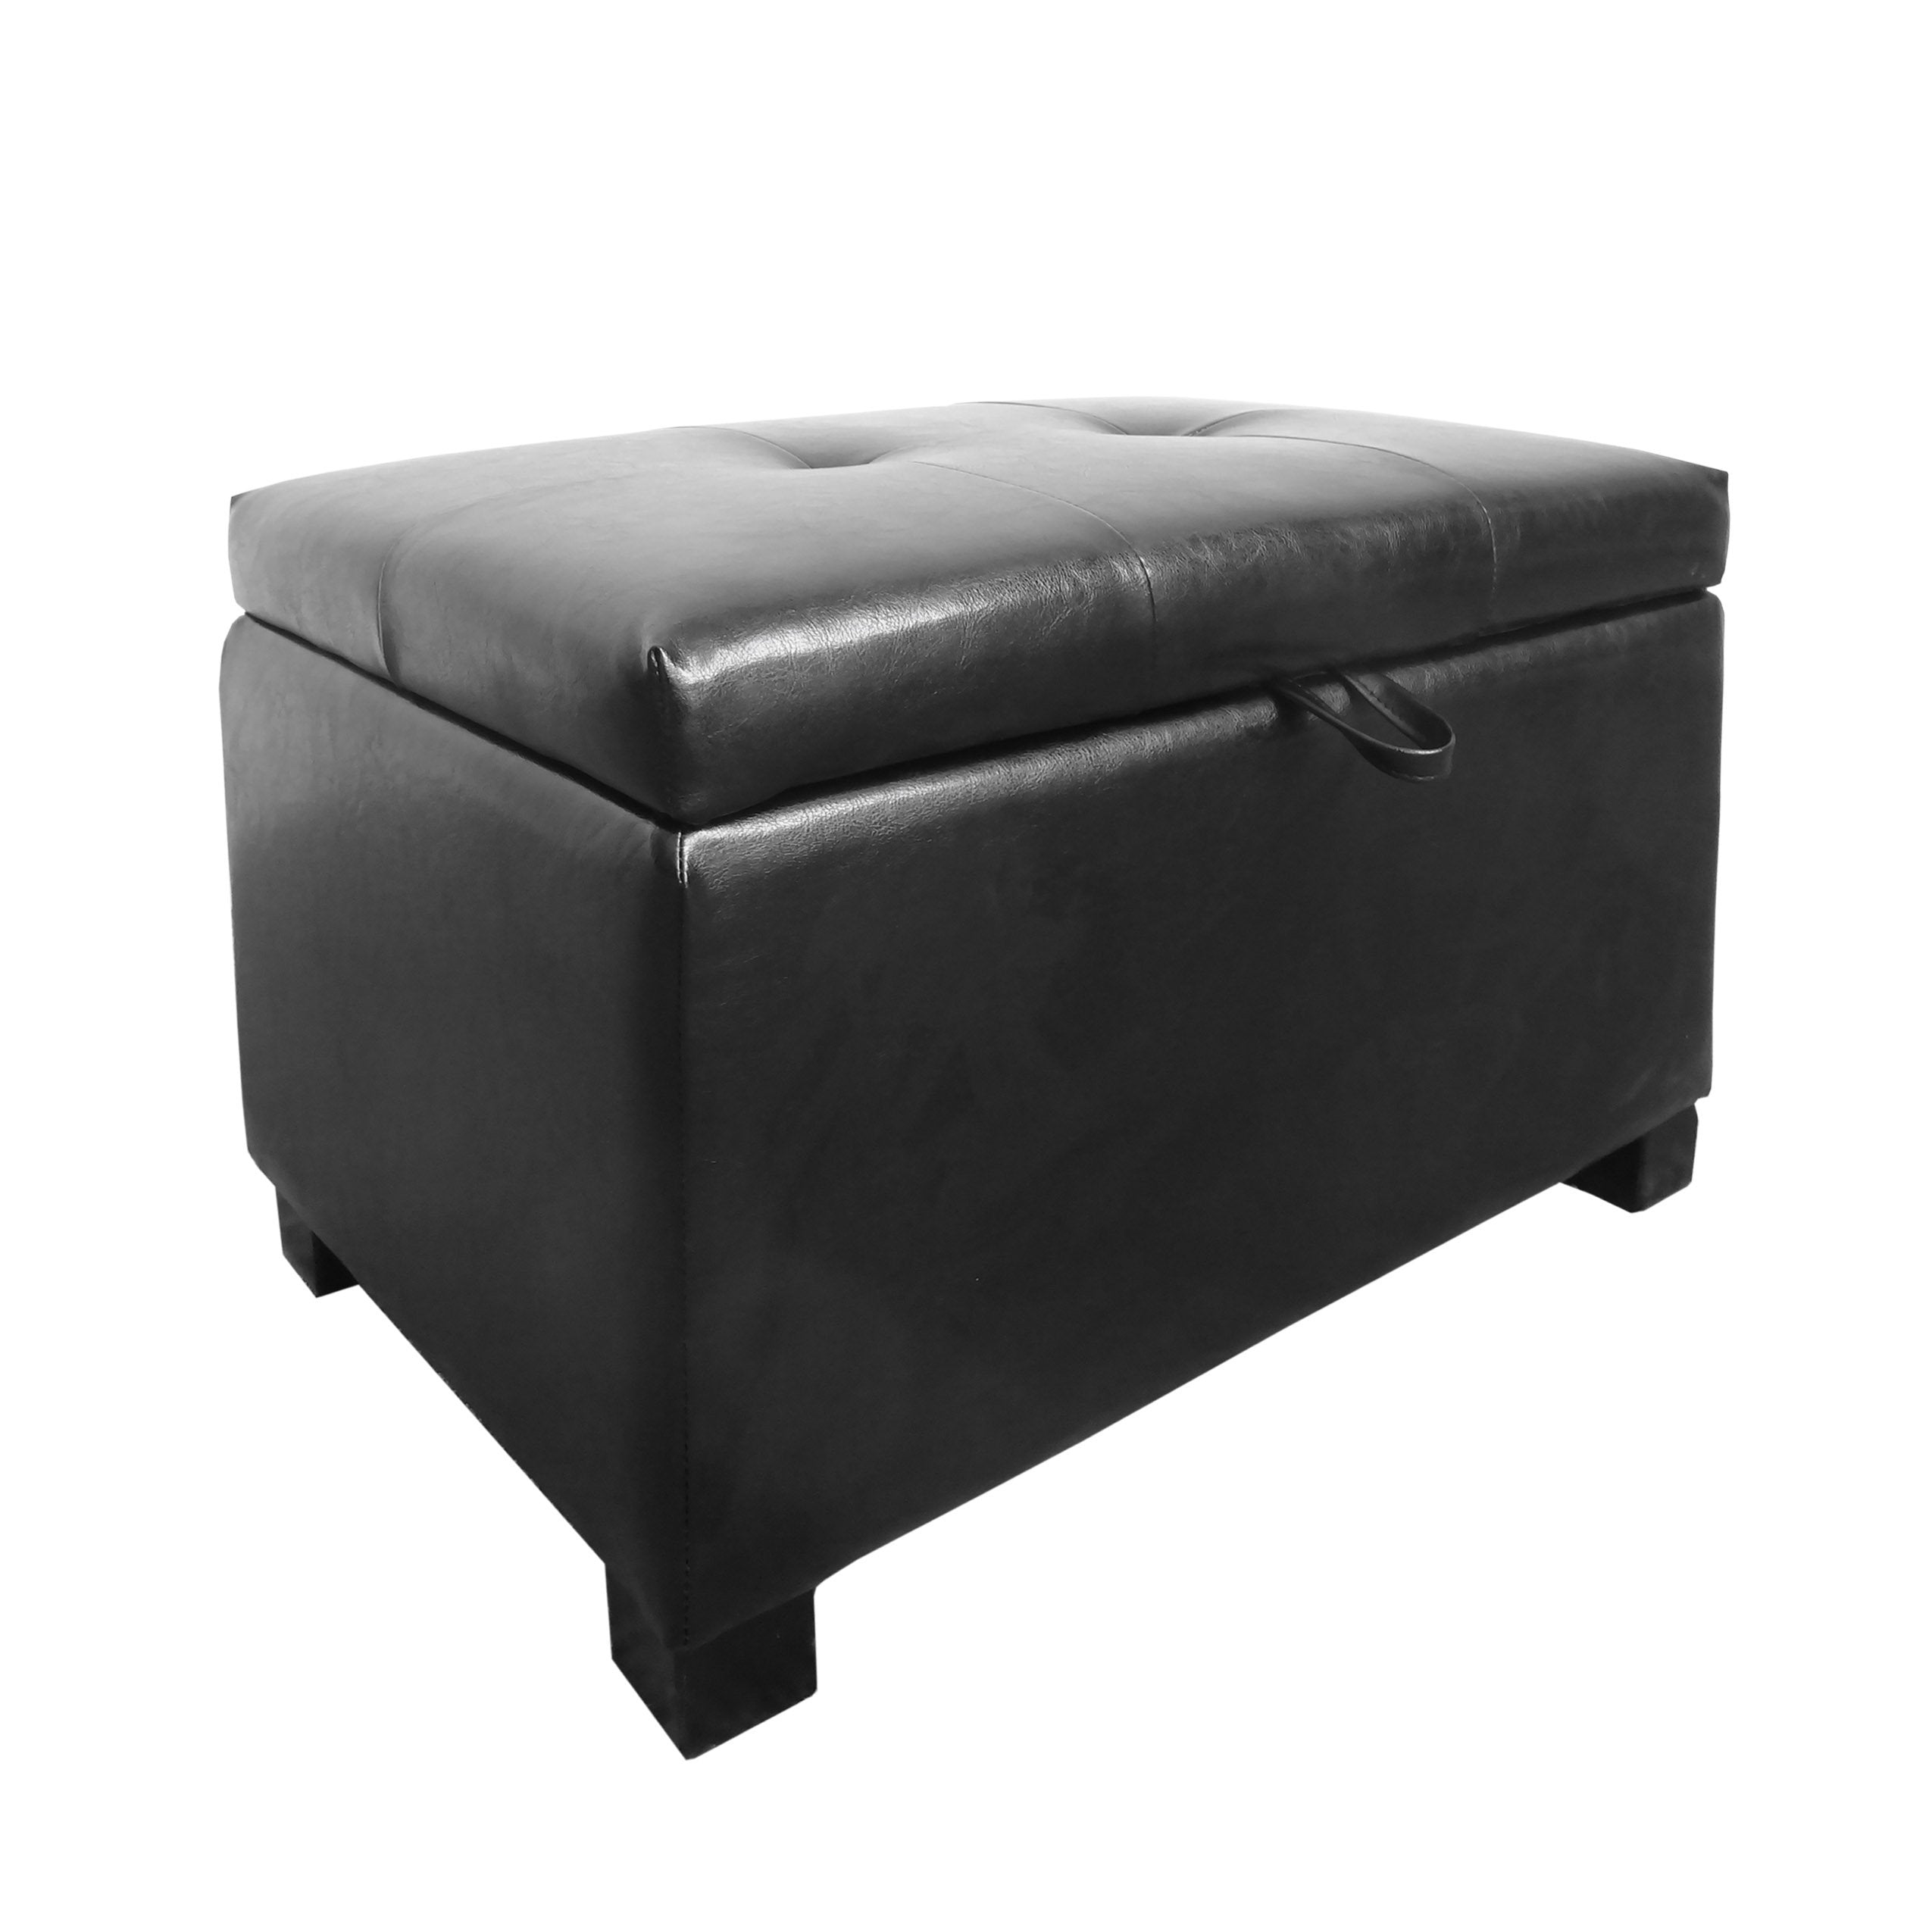 Peachy Black Leather Storage Ottoman Theyellowbook Wood Chair Design Ideas Theyellowbookinfo